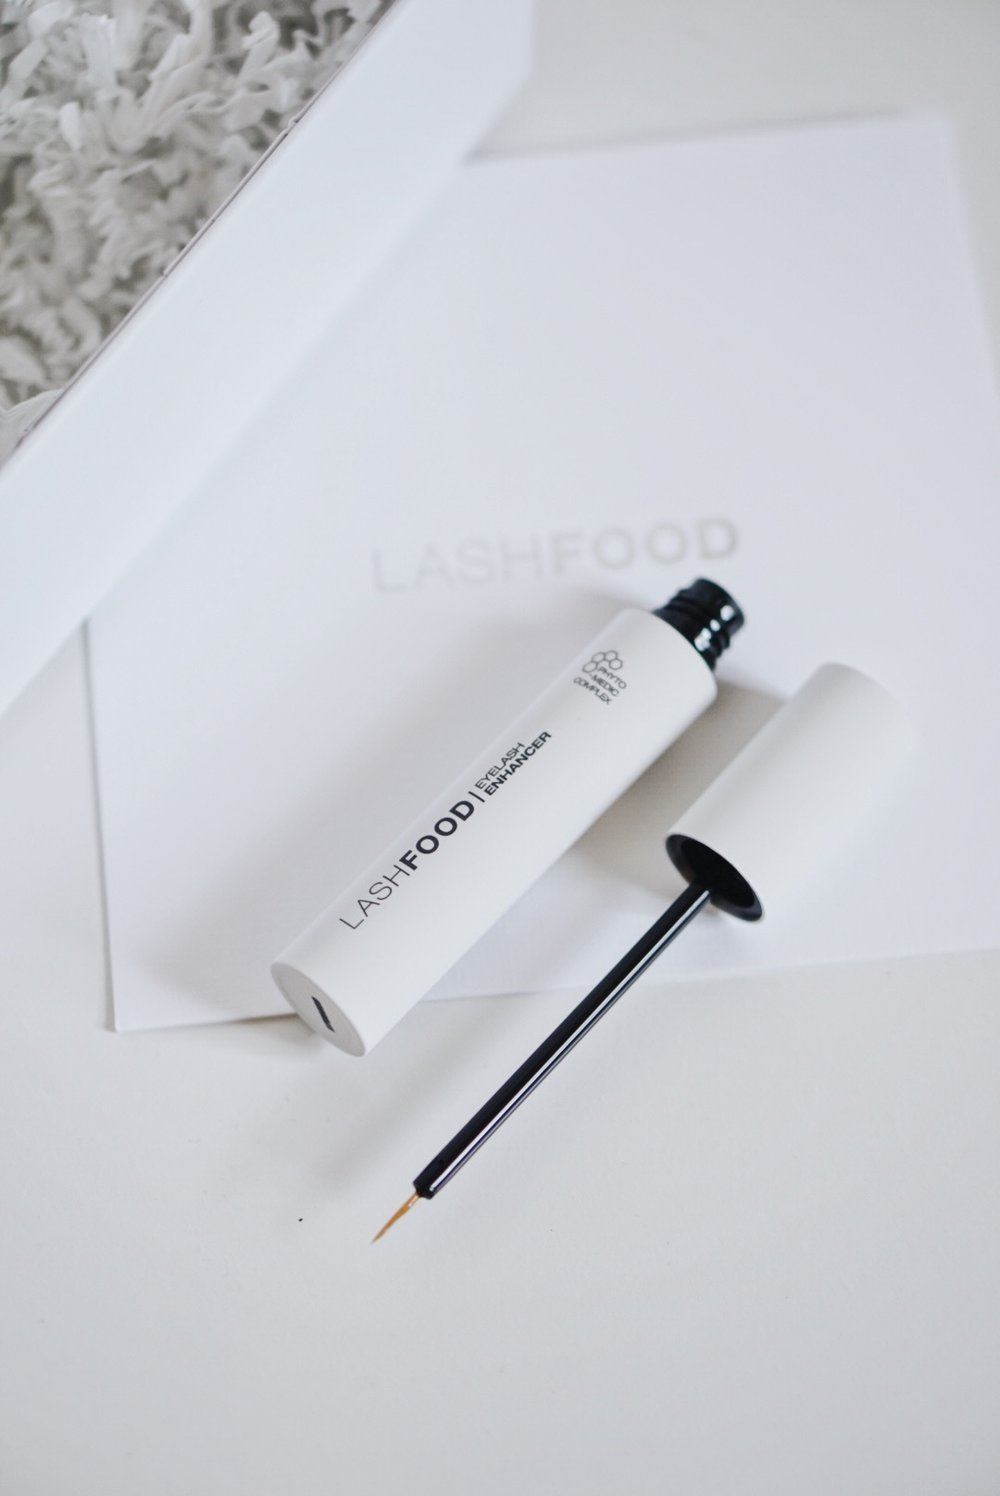 Lash-Extensions-LashFood-Eyelash-Enhancer-Review-Thoughts